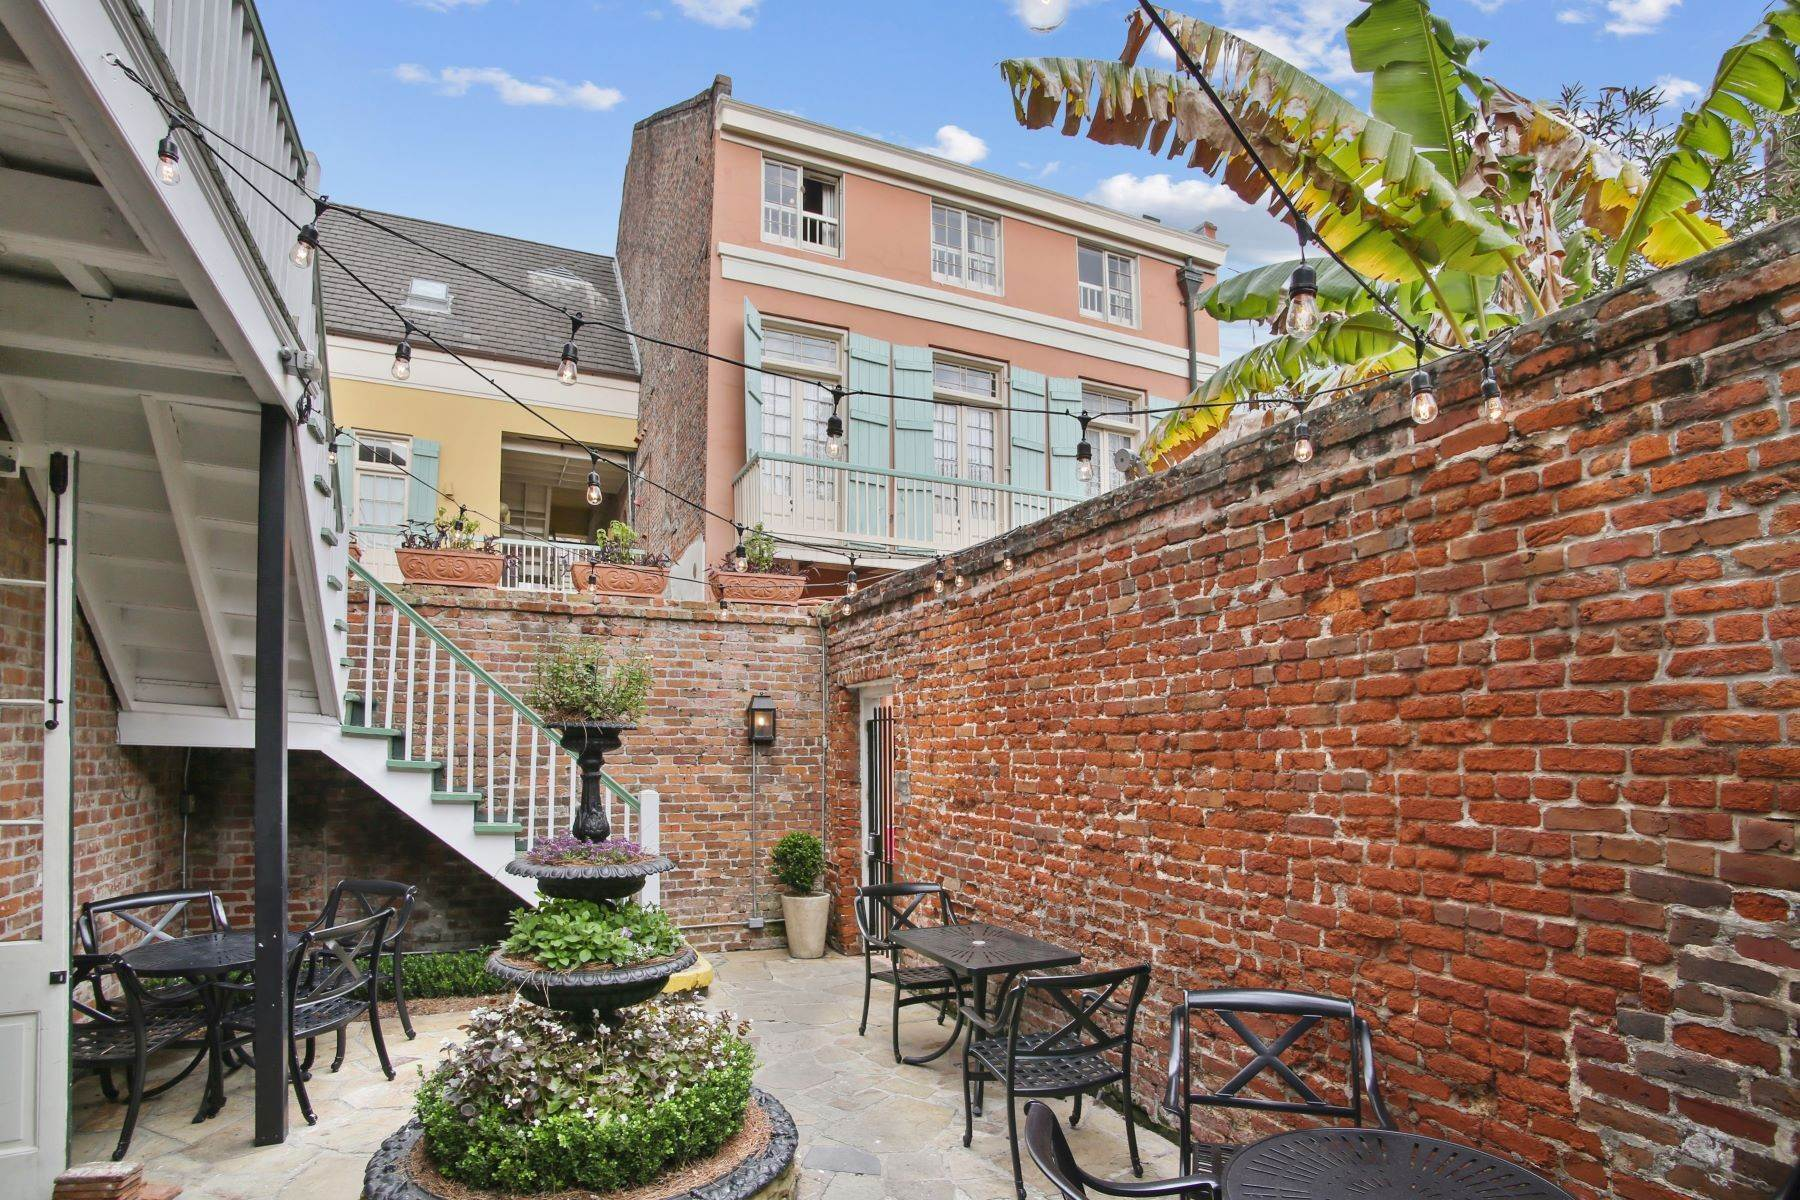 4. Condominiums for Sale at 1040 Chartres Street, C6 1040 Chartres St, C6 New Orleans, Louisiana 70116 United States